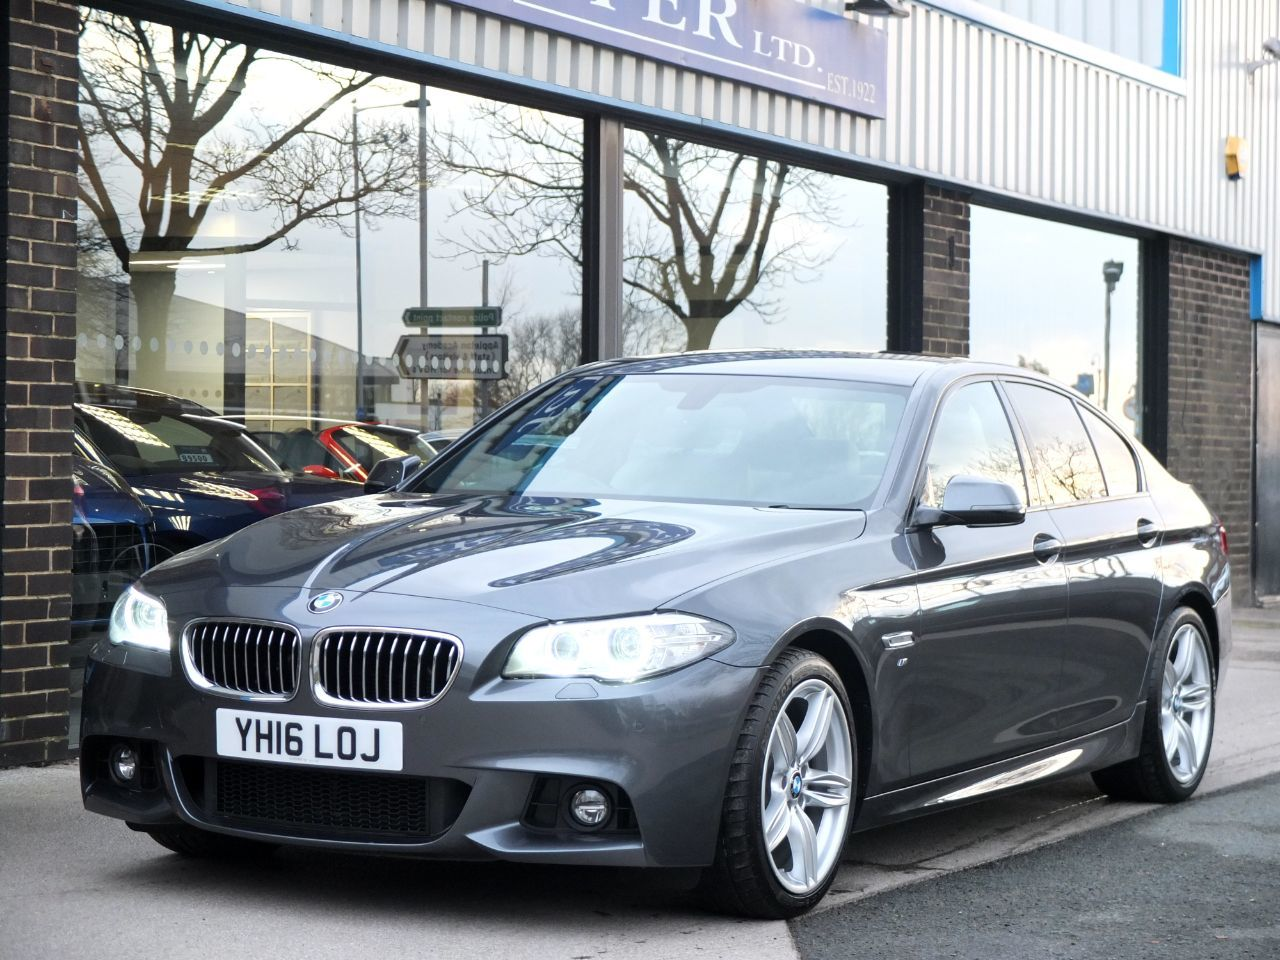 BMW 5 Series 2.0 520d M Sport Plus Pack Auto 190ps Saloon Diesel Mineral Grey MetallicBMW 5 Series 2.0 520d M Sport Plus Pack Auto 190ps Saloon Diesel Mineral Grey Metallic at fa Roper Ltd Bradford